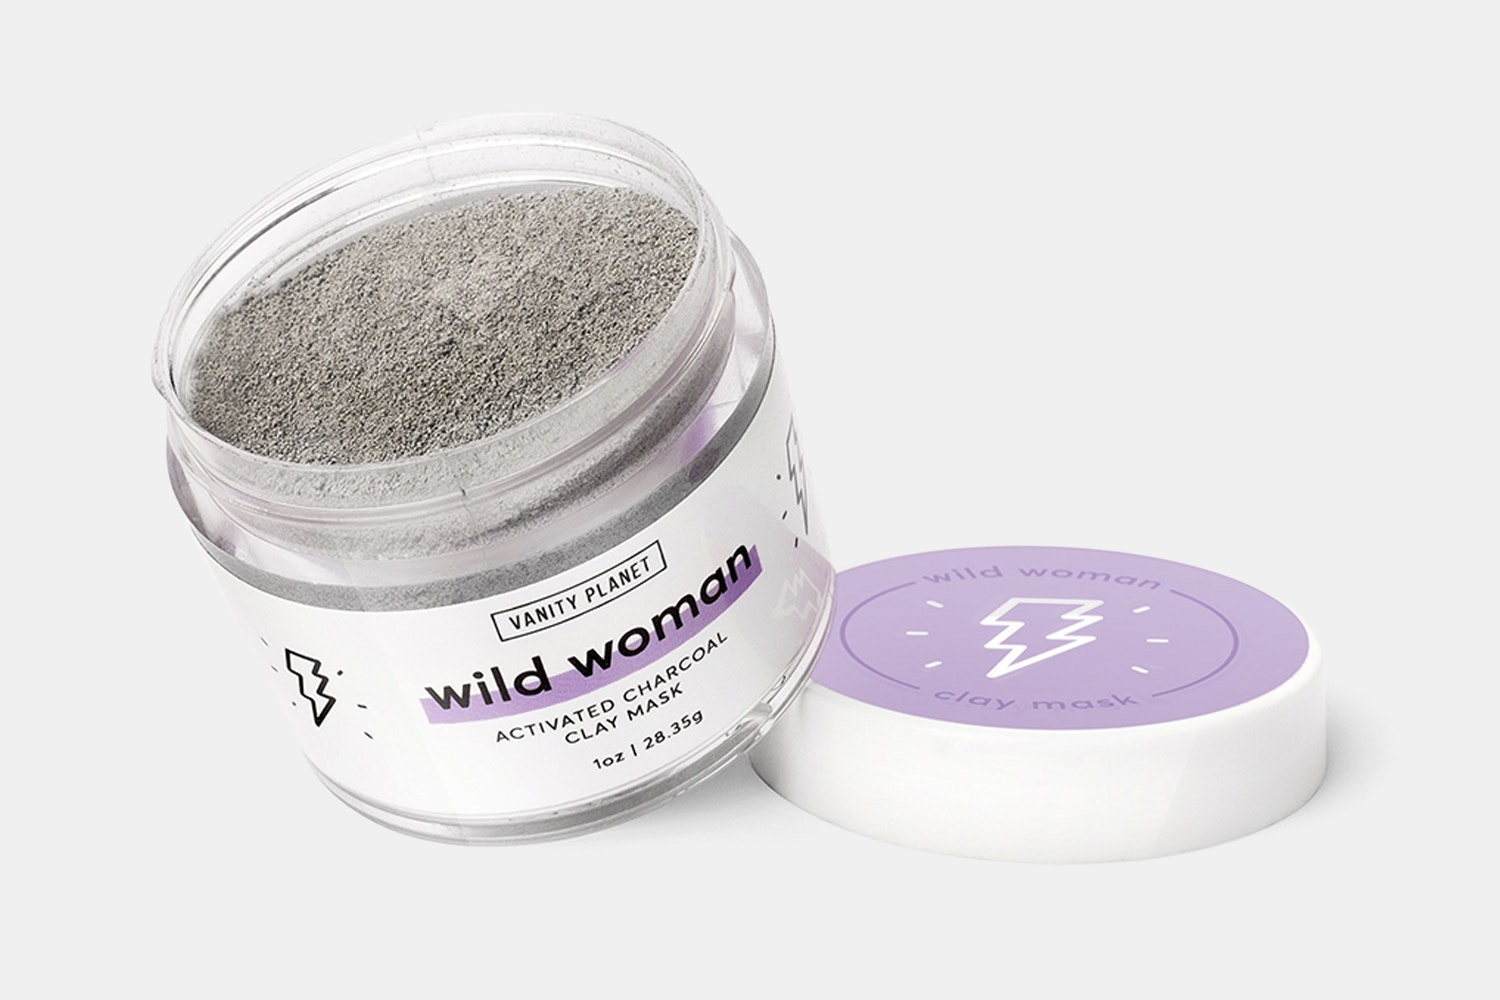 Wild Woman Activated Charcoal Clay